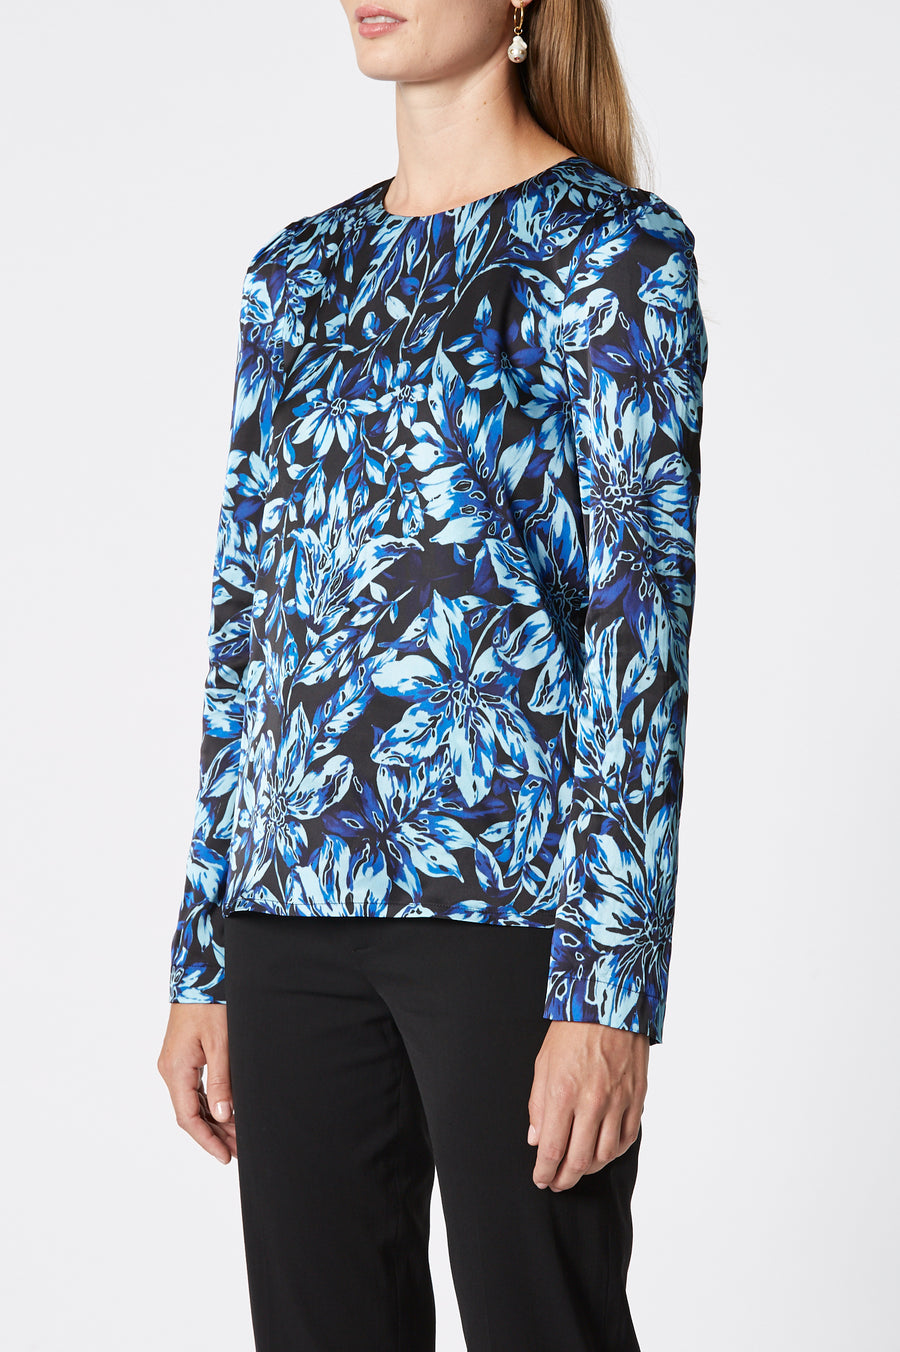 Printed Gathered Top, Long Sleeve, Single Button Fastening at back of Top, Color Cobalt